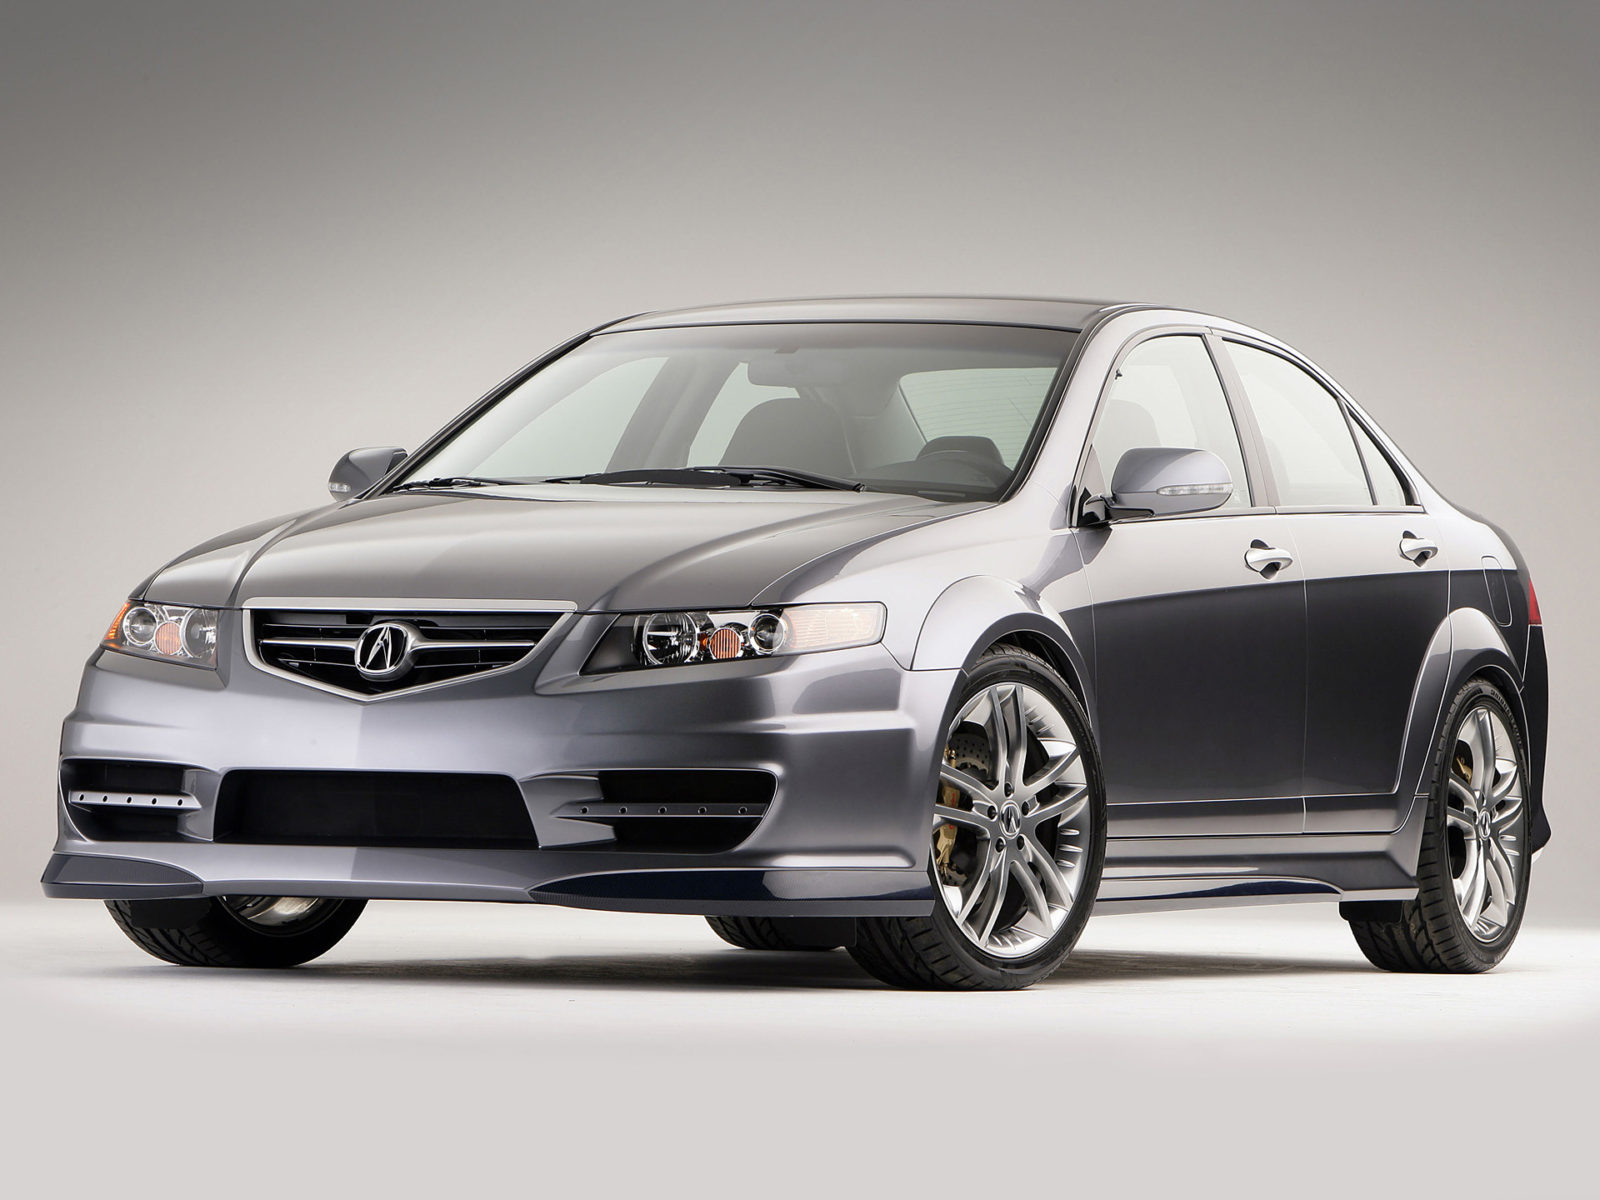 2005 Acura Tsx A Spec Concept Wallpapers Viruscars